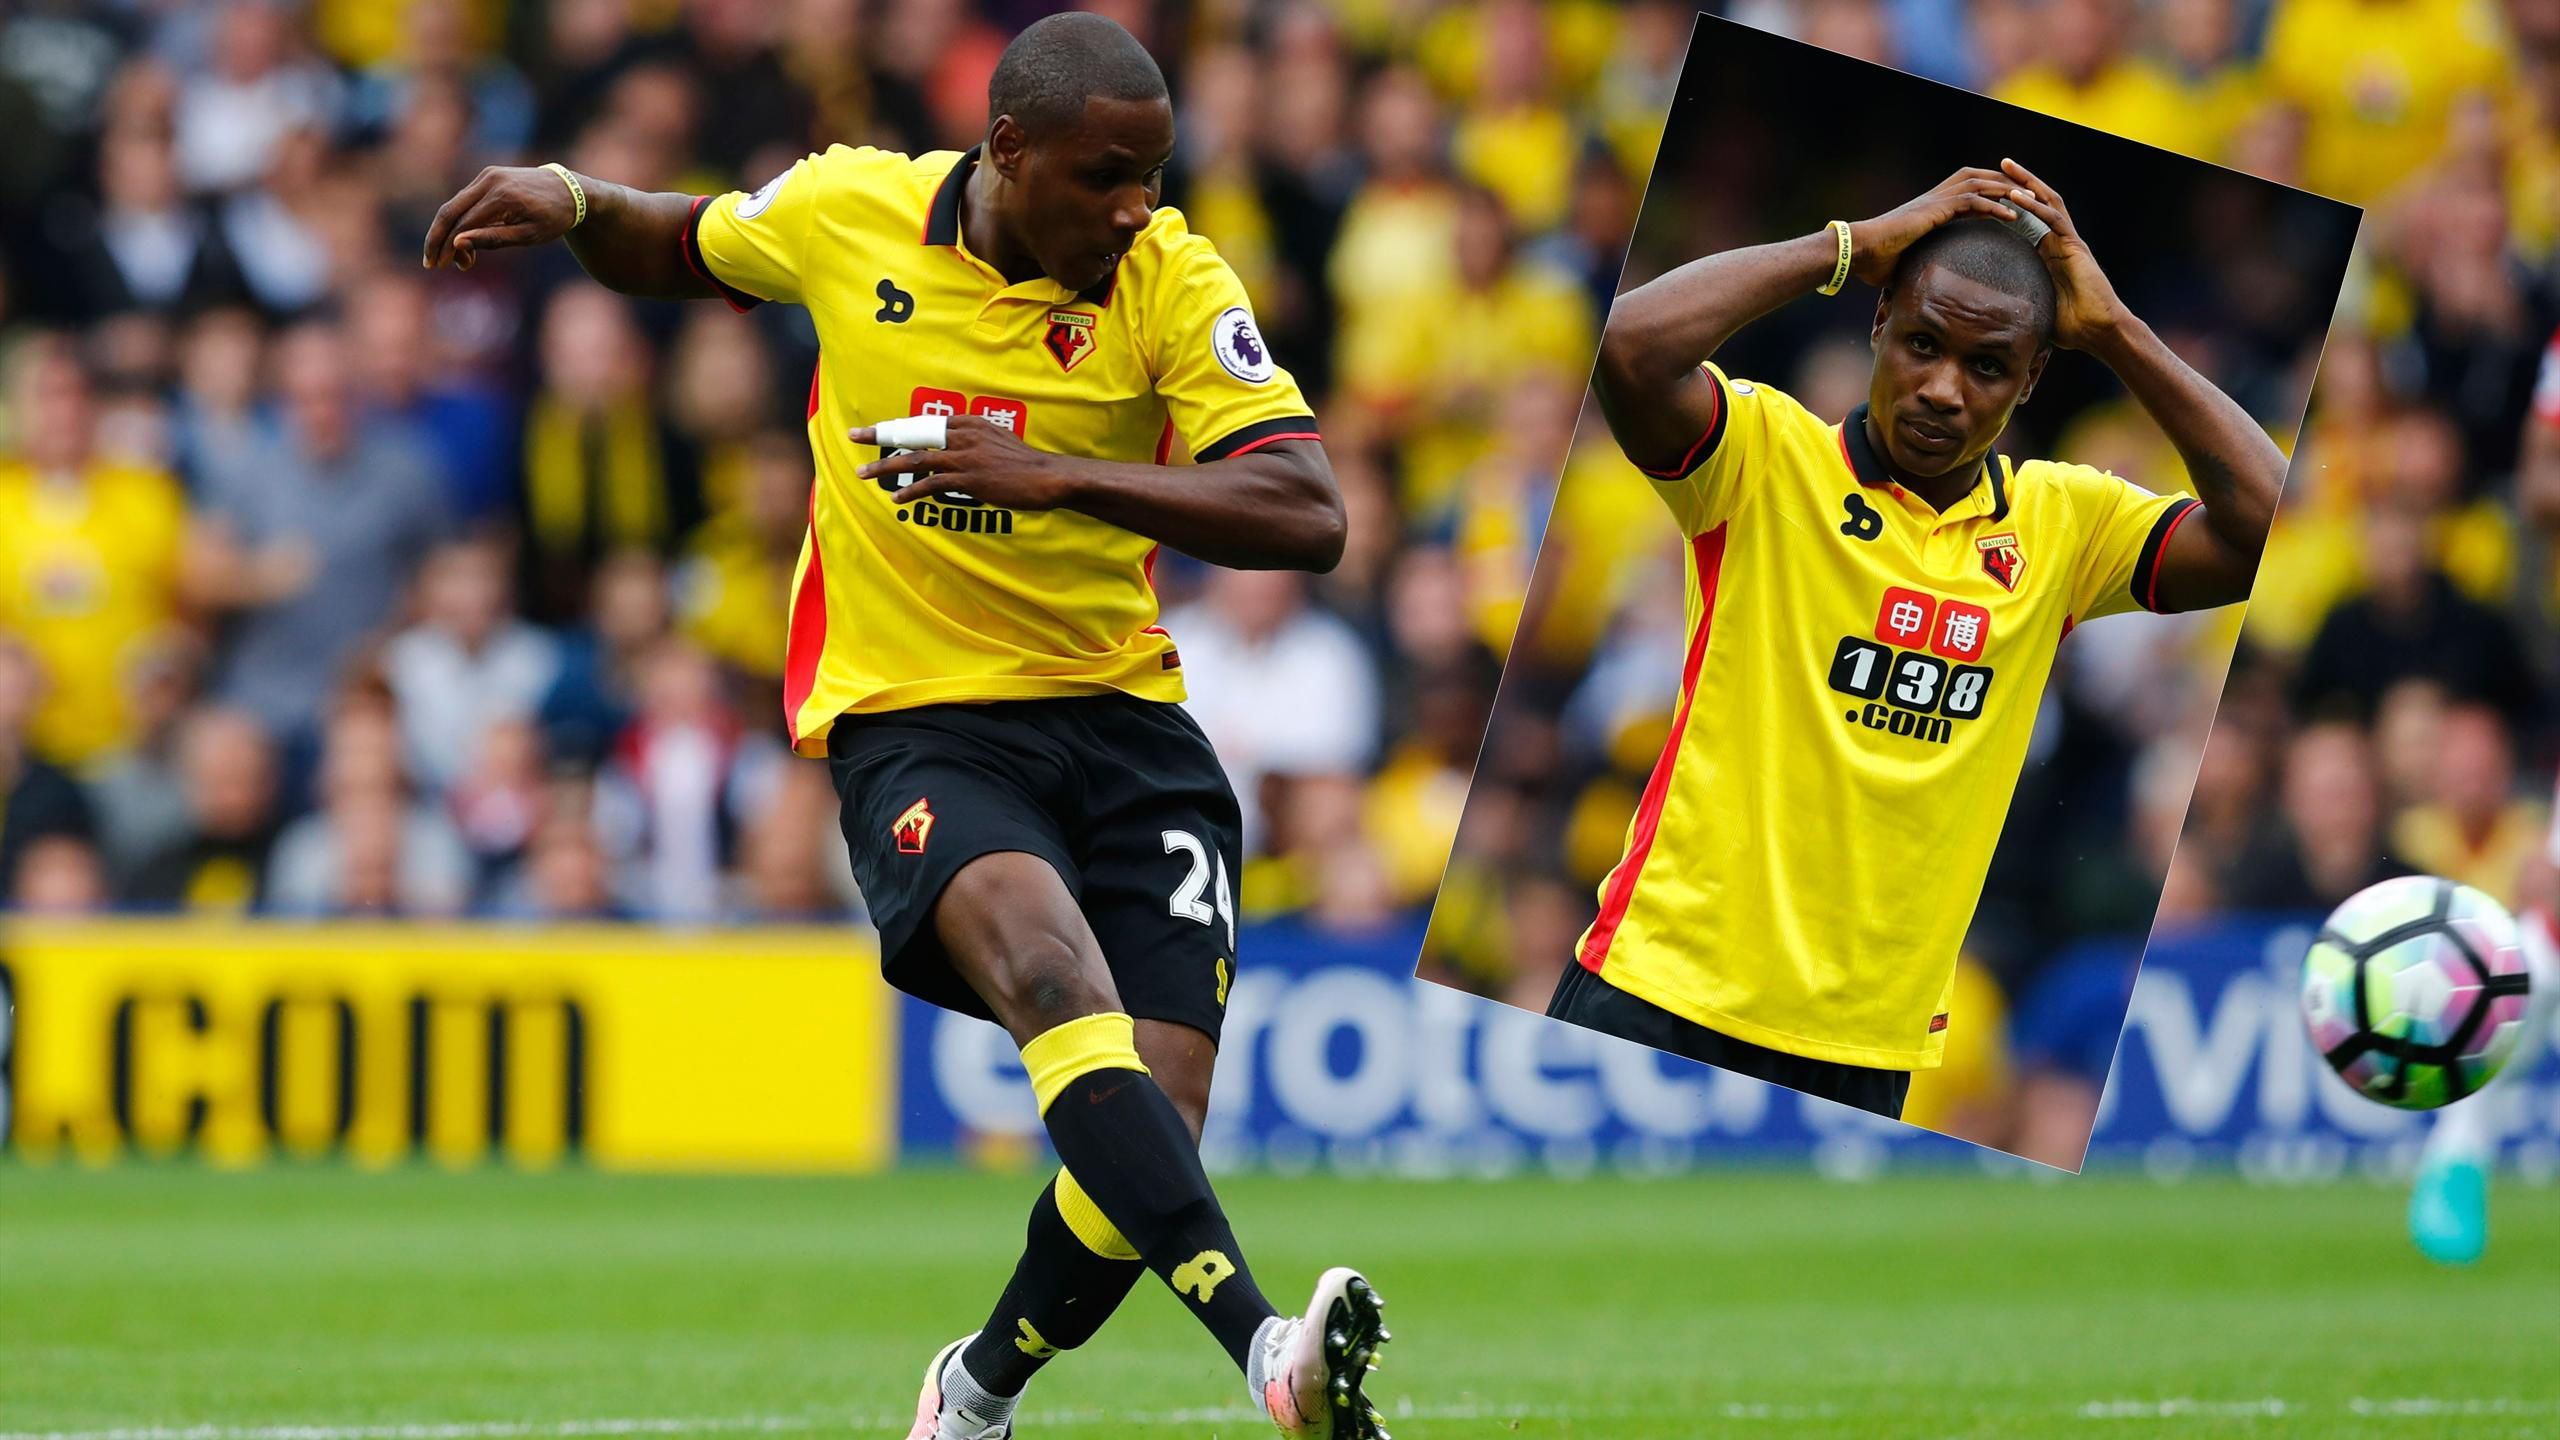 Odion Ighalo's inexplicable miss for Watford against Manchester United